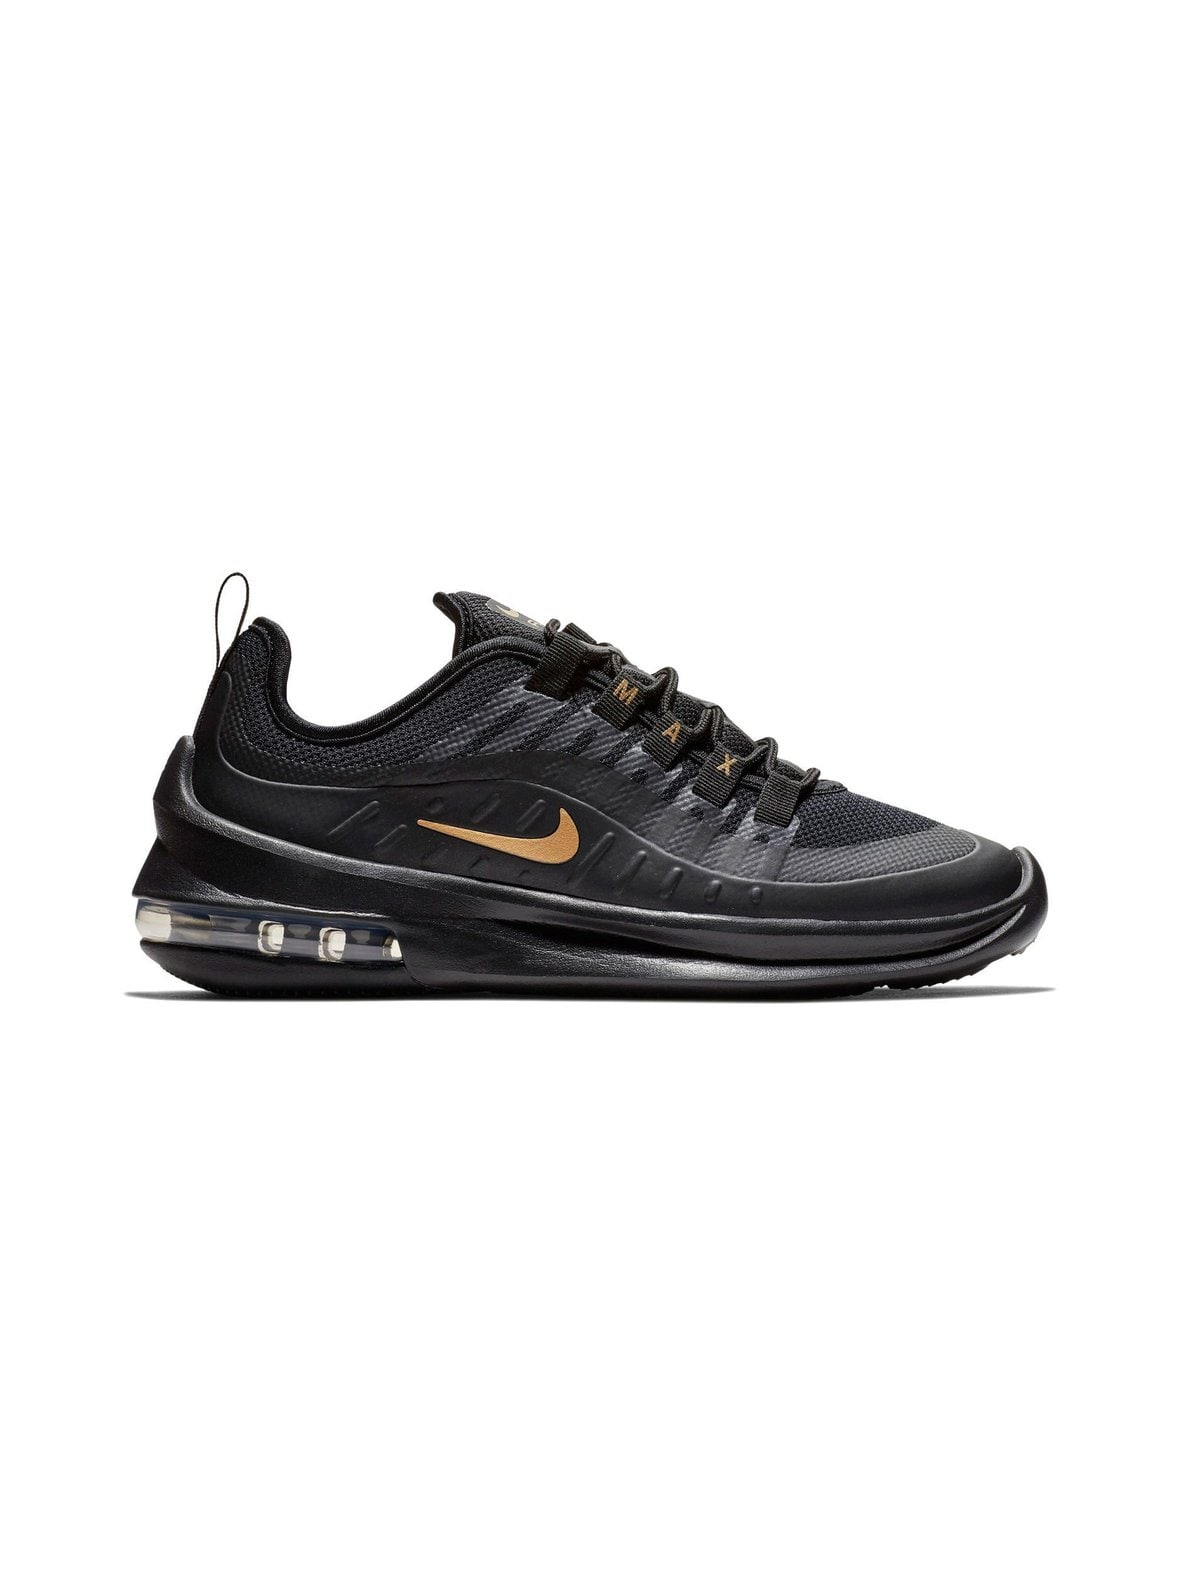 new arrivals c7089 ae068 W Air Max Axis -sneakerit